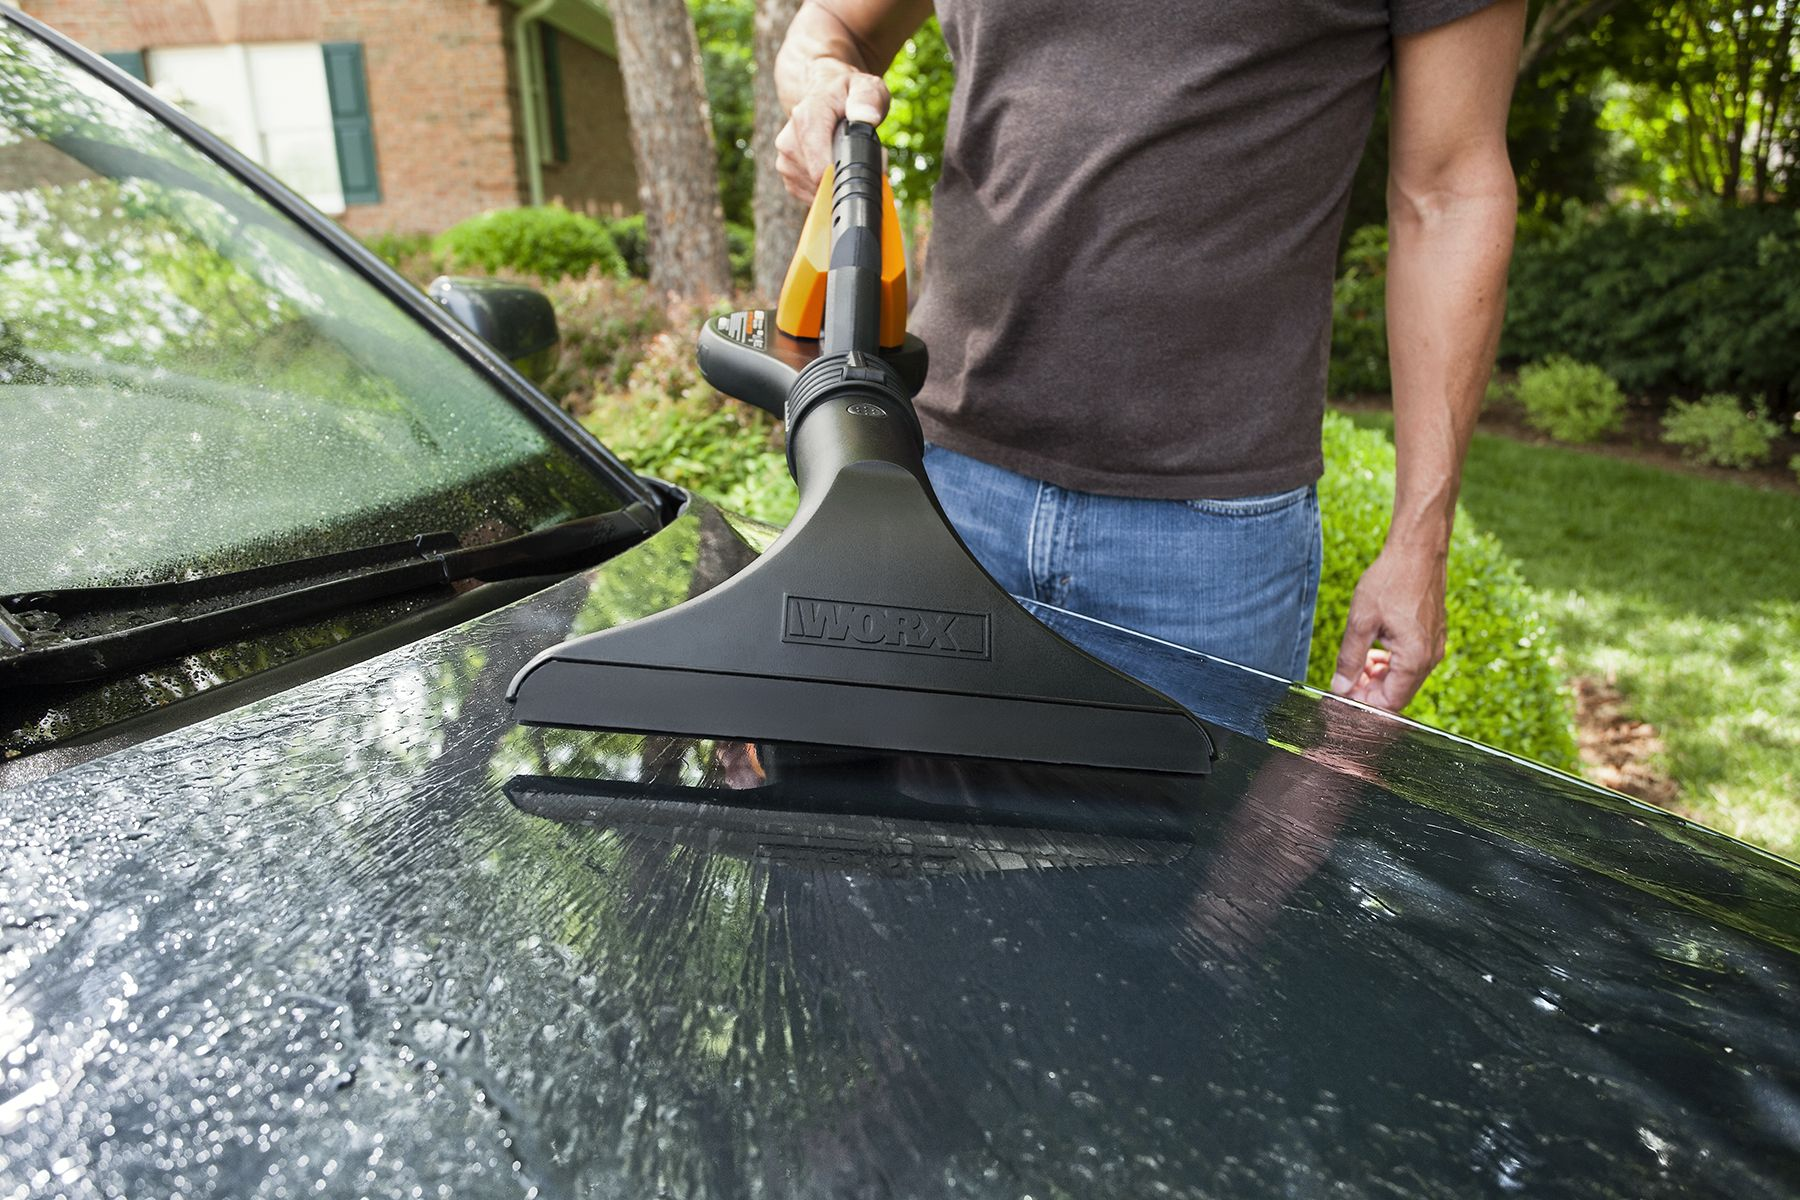 Car Air Blower To Dry : Spotless air wand attachments for drying cars windows